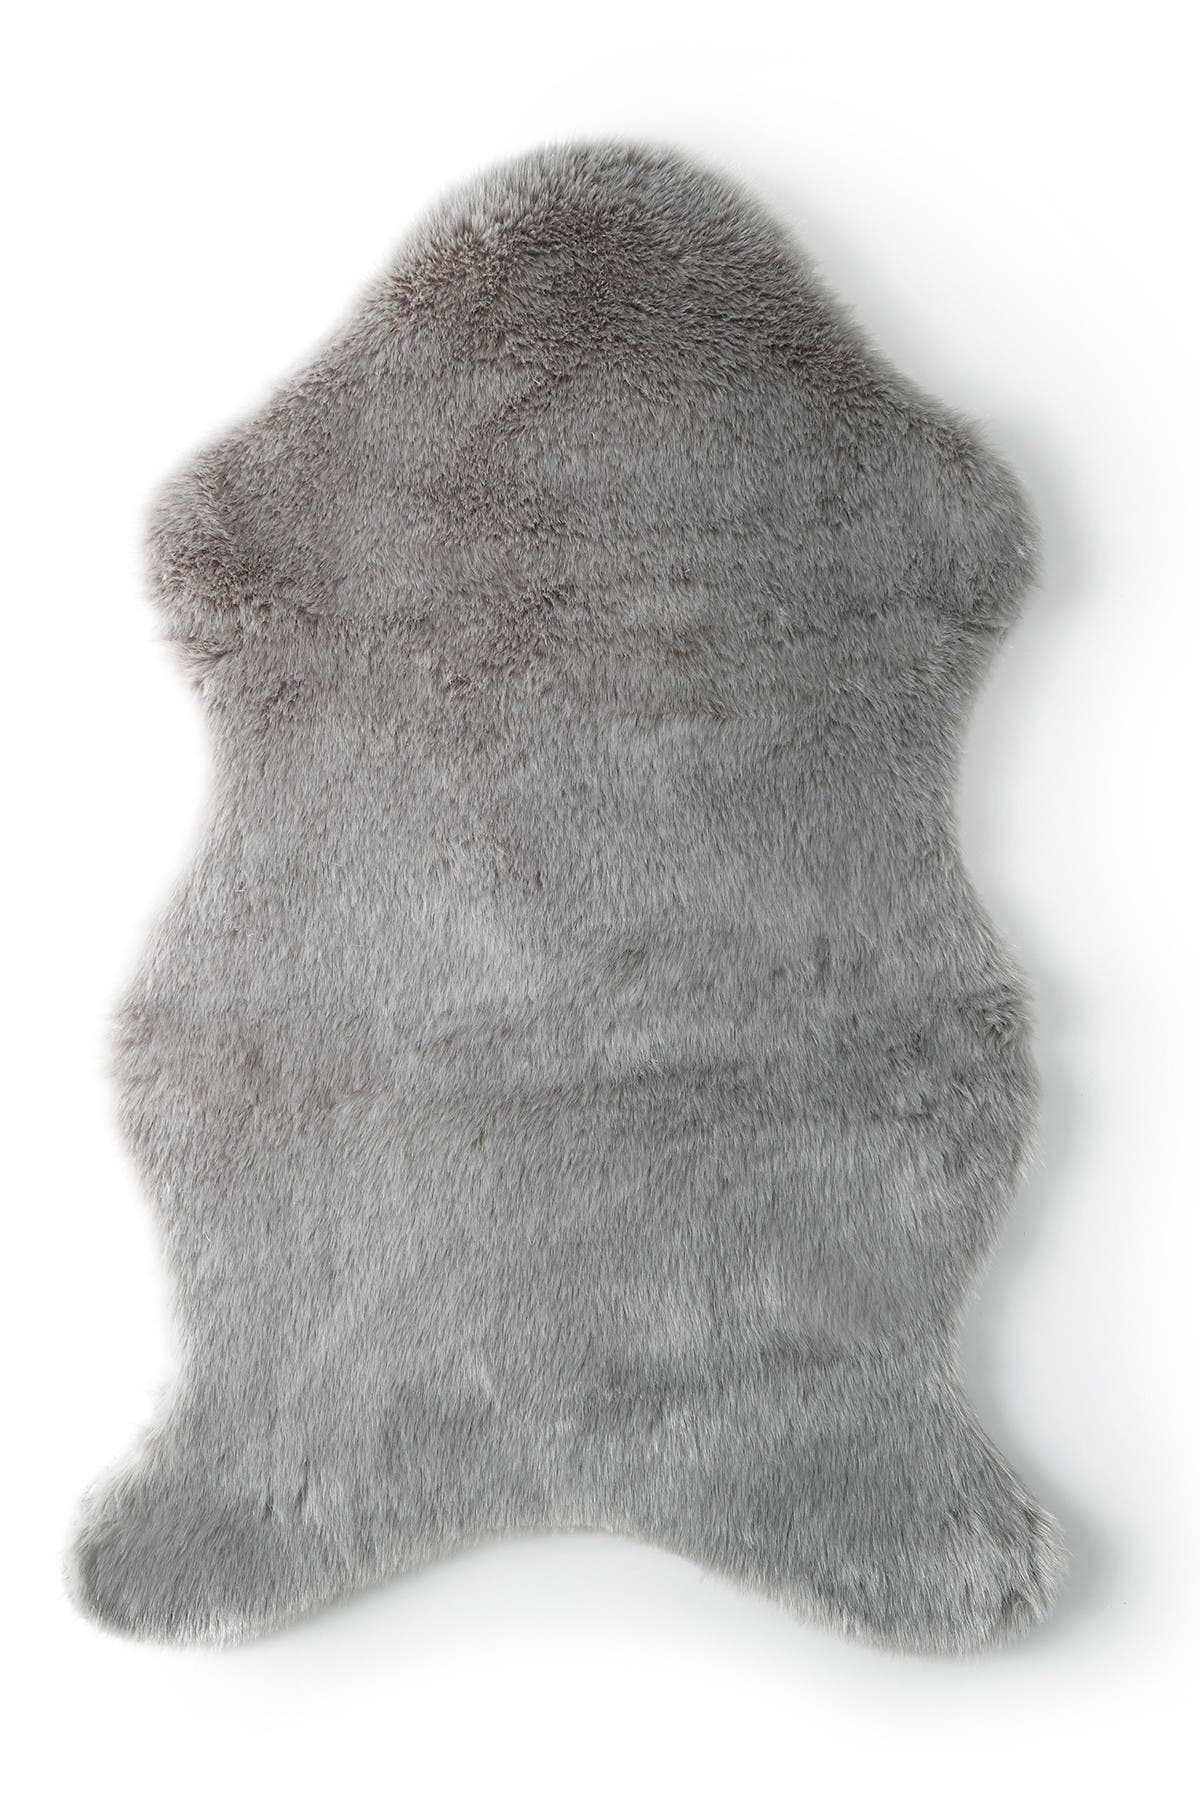 """Image of Levtex Faux Fur Shaped Rug - Grey - 36""""x24"""""""